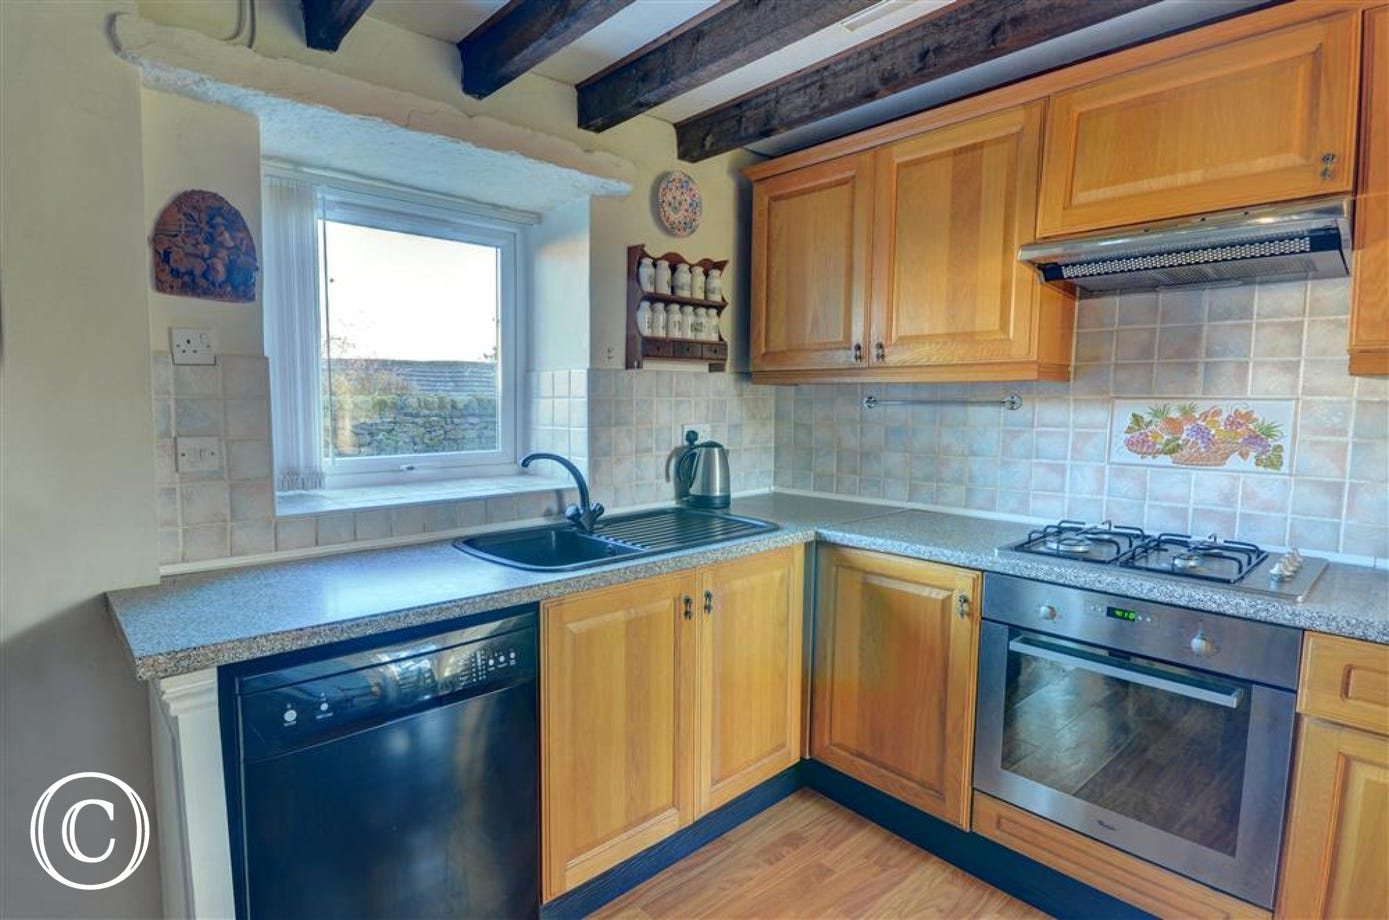 Spacious well equipped kitchen with original beams on the ceiling.